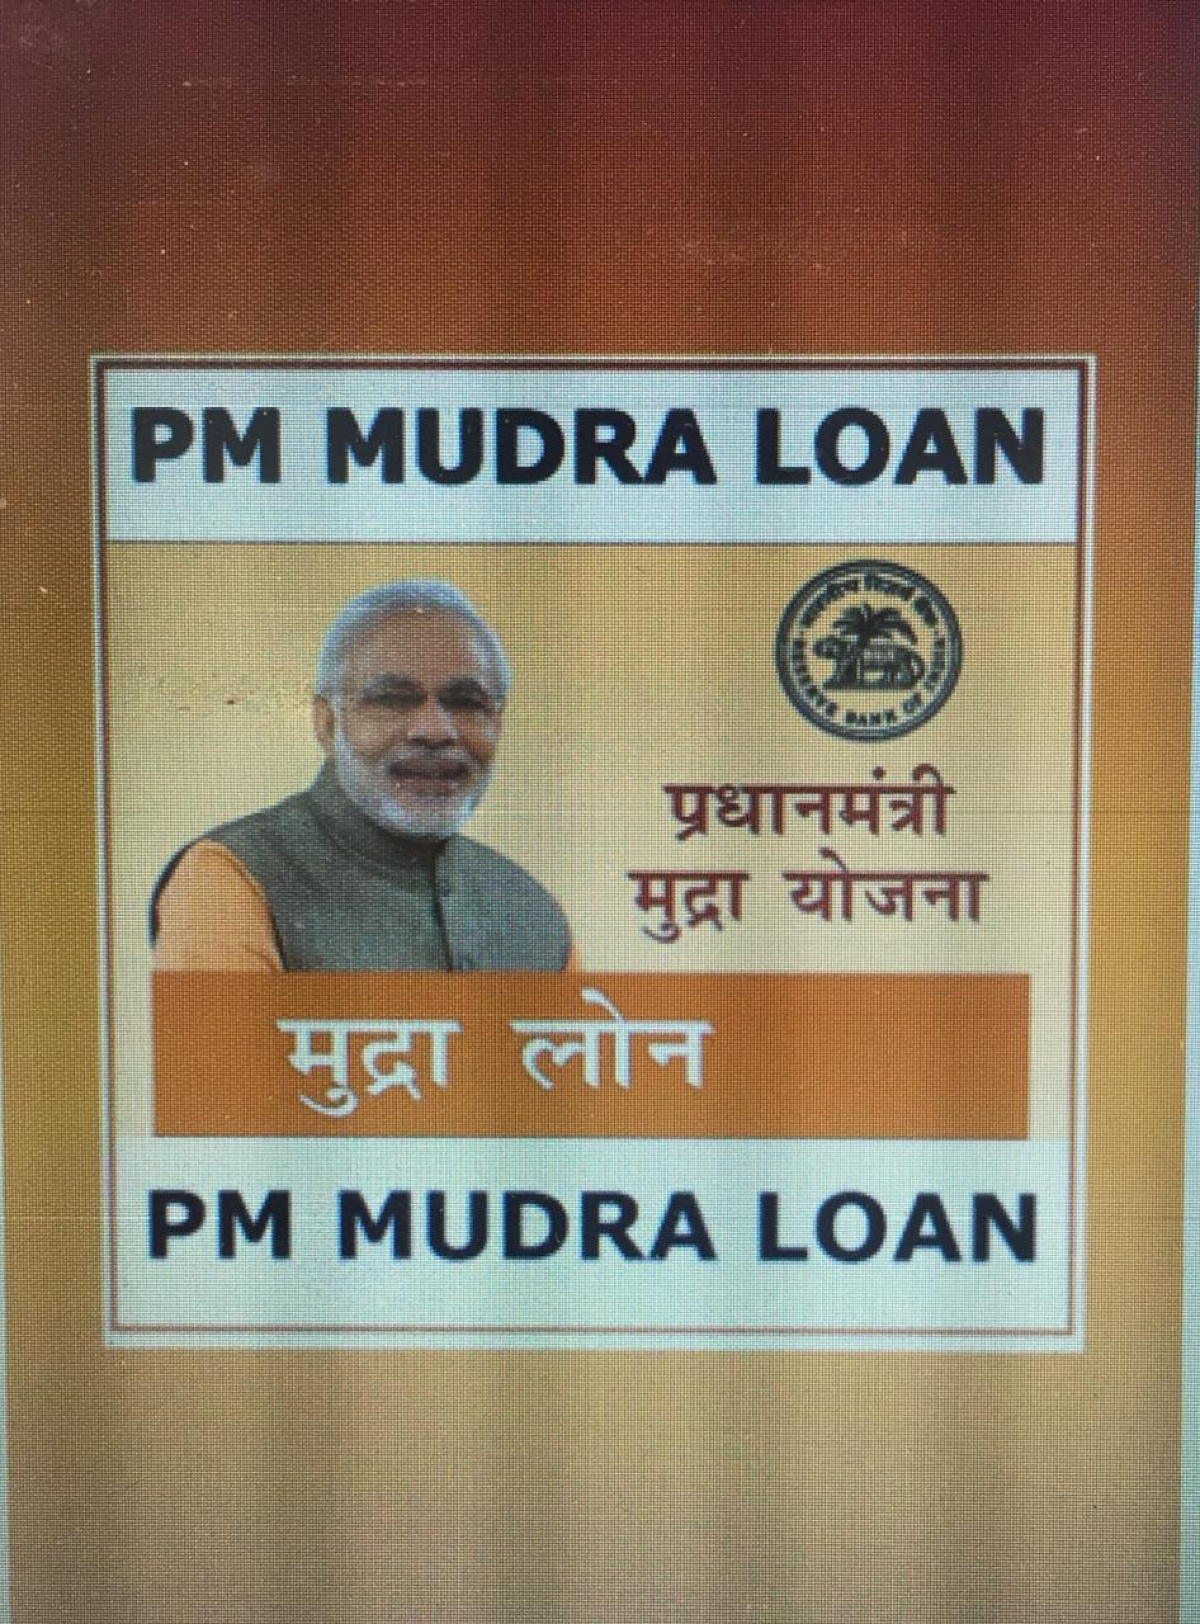 Mumbai: Four held for duping 4000 people of ₹4 crore with 'Prime Minister' loan apps